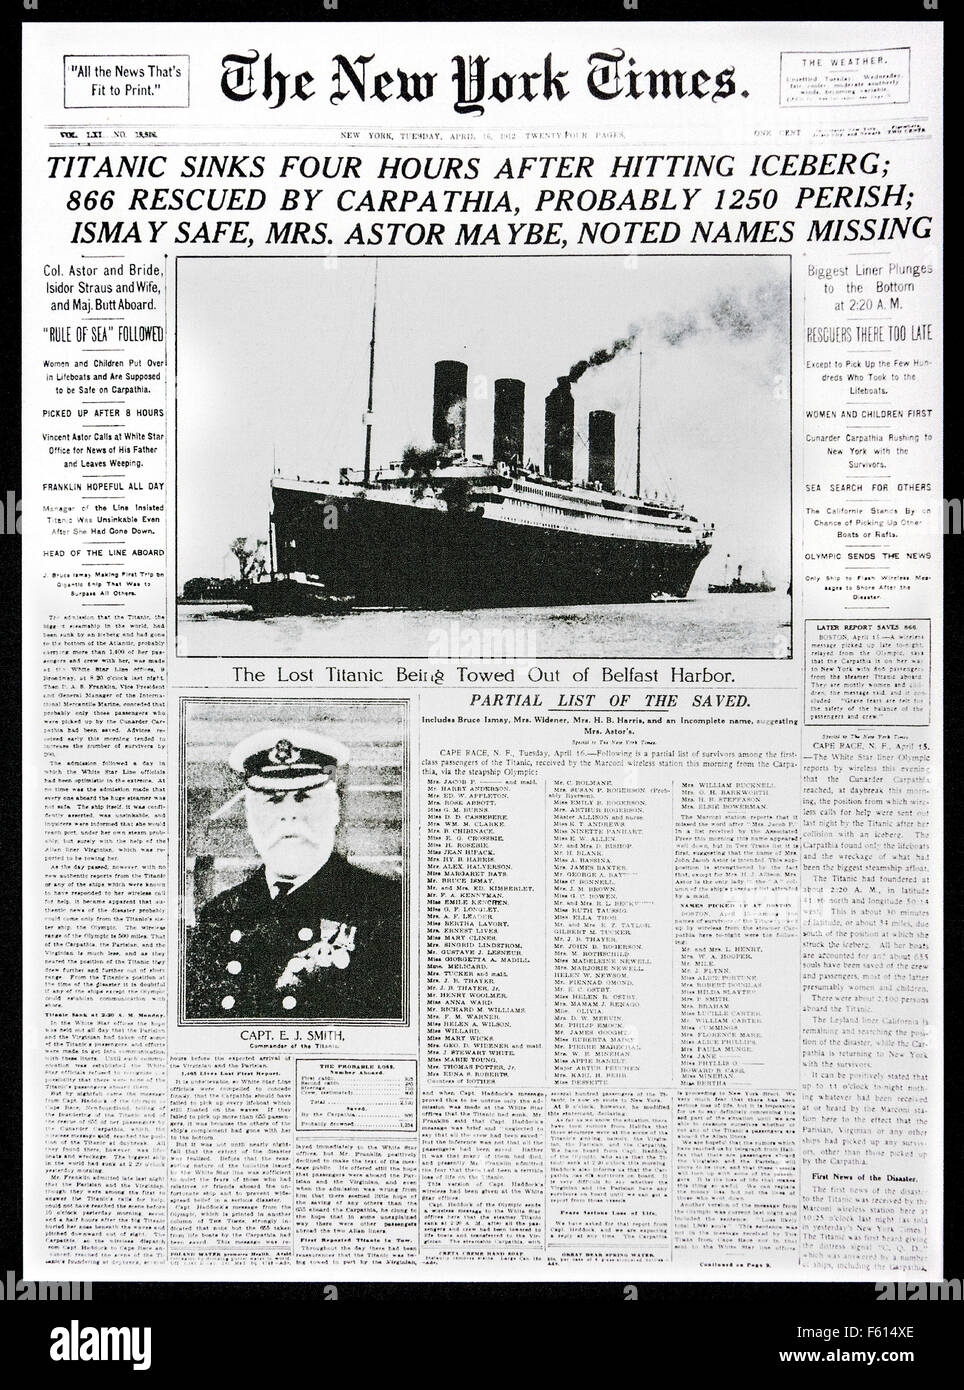 1912 front page news of The New York Times reporting the sinking of the Titanic after hitting iceberg - Stock Image